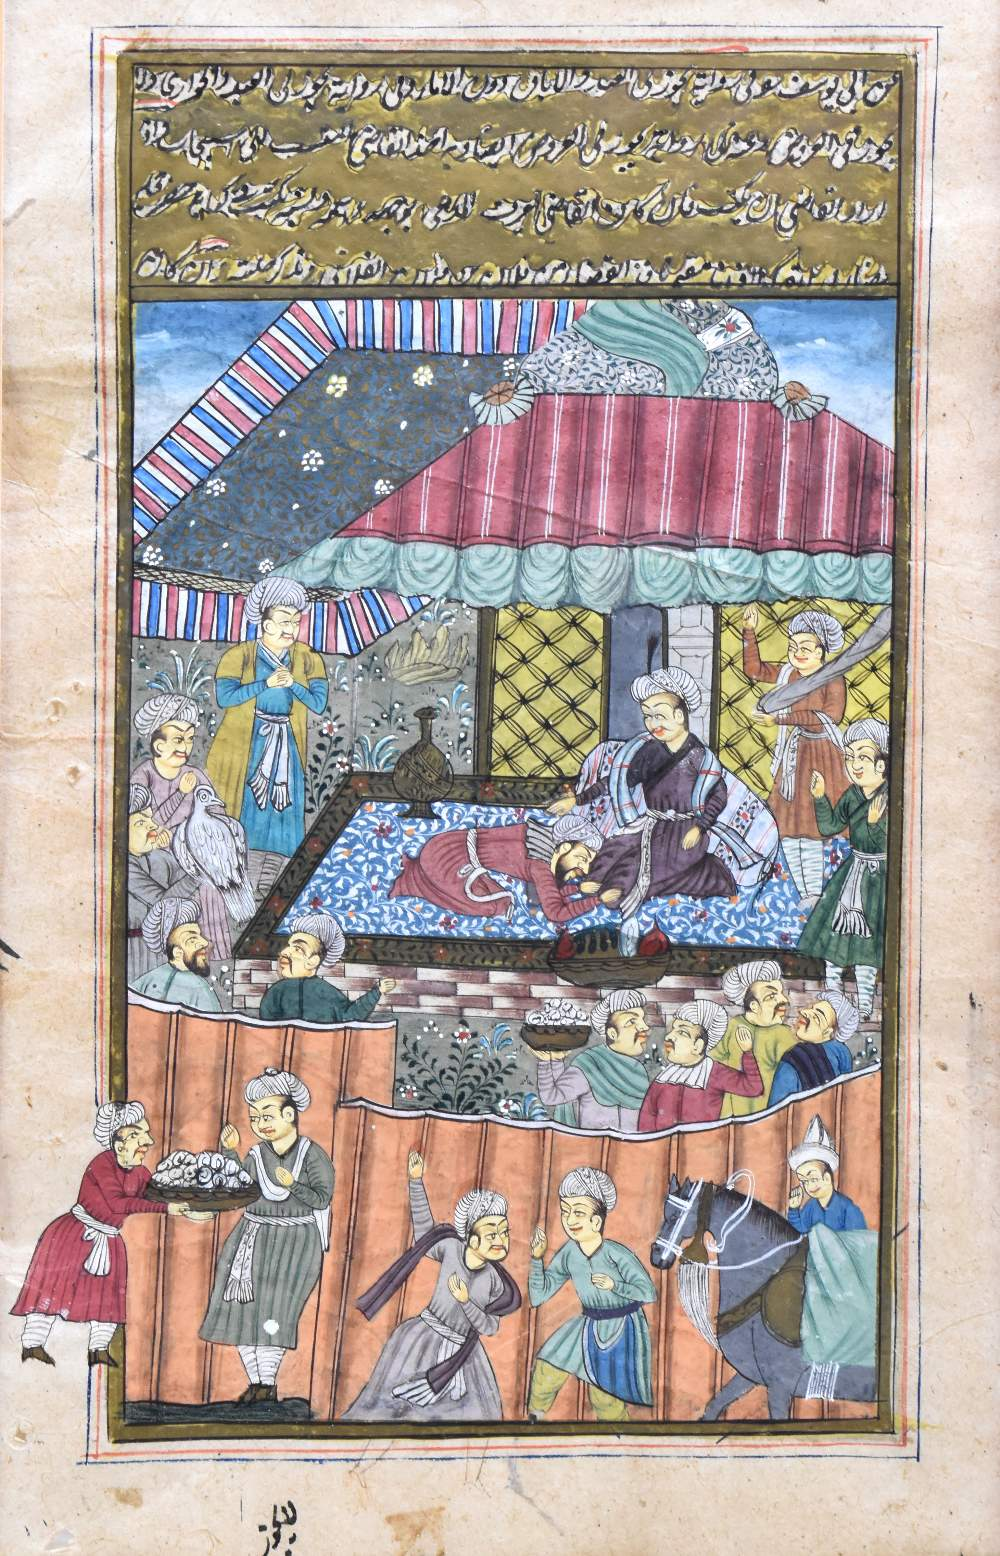 Two Indian Mughal watercolours, depicting figures beside temple scenes, largest 33x23cm, each framed - Image 2 of 3